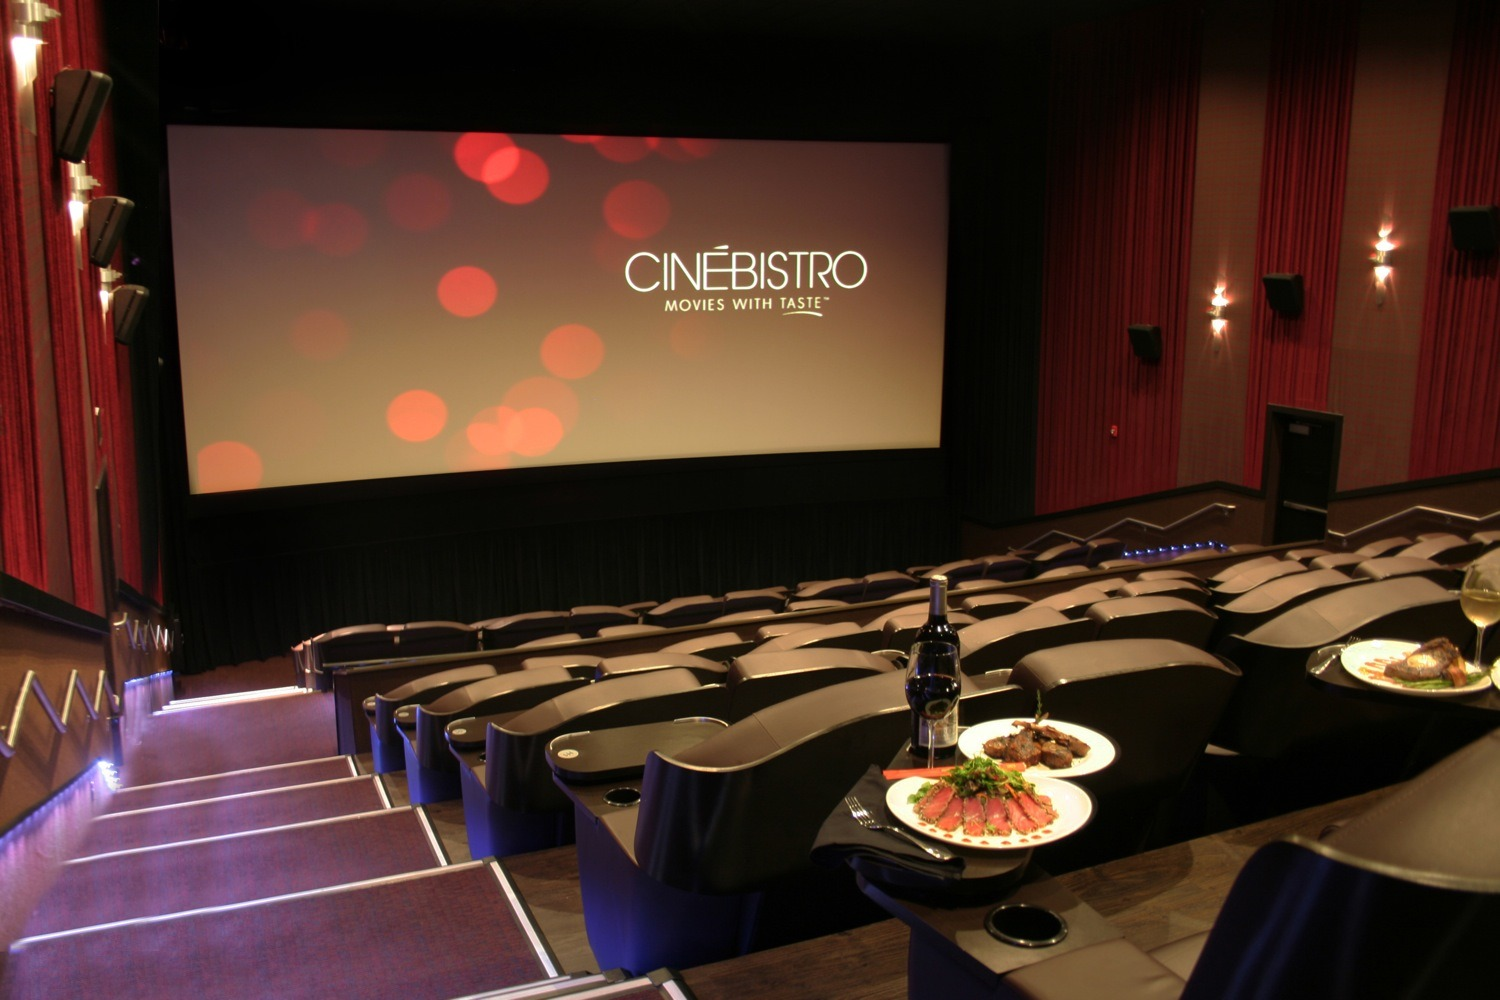 miamis best movie theaters for new releases and indie films